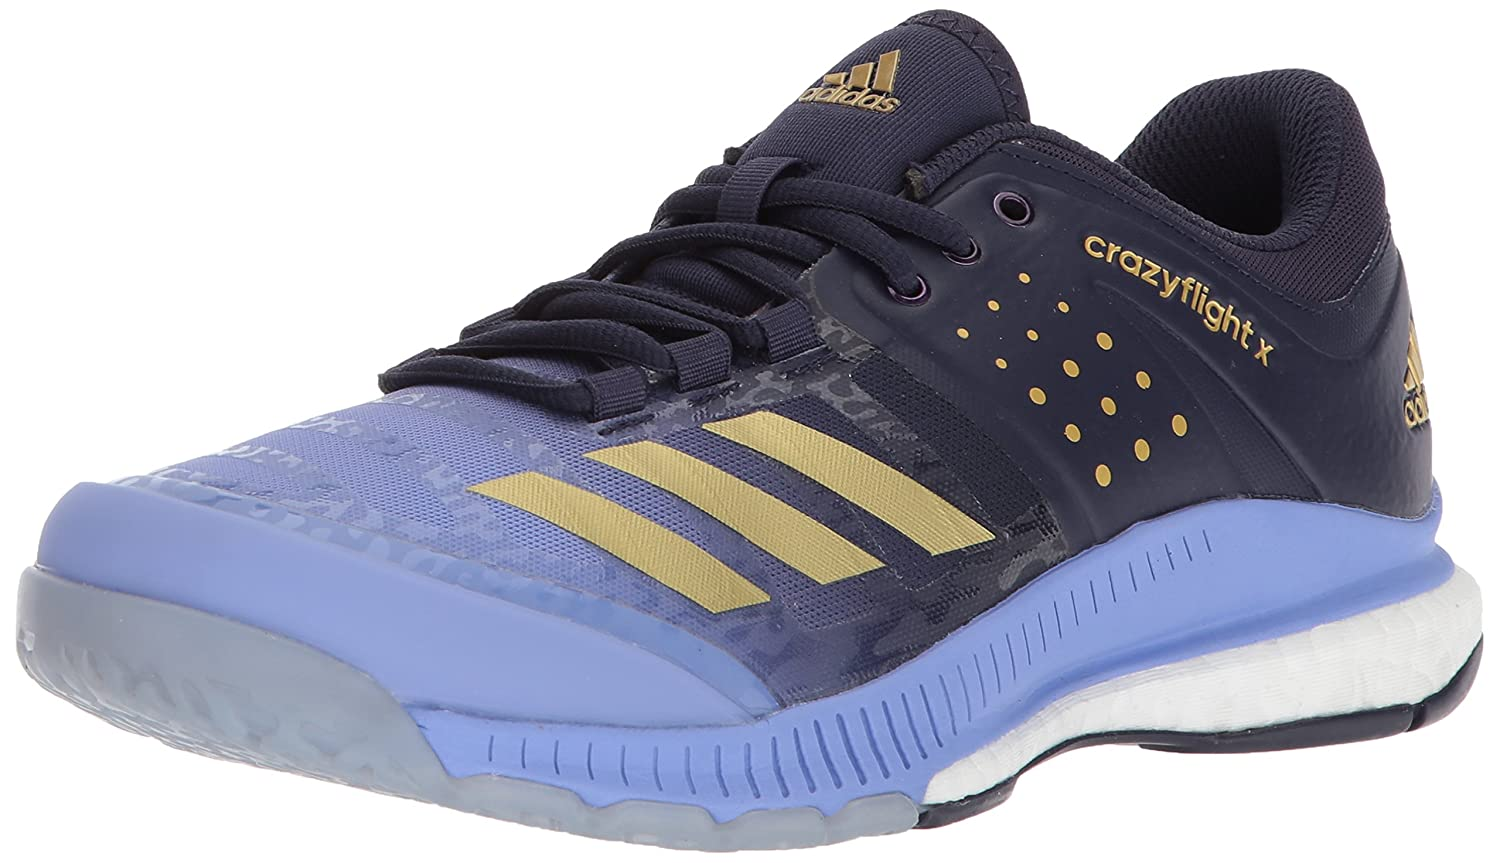 adidas Women's Crazyflight X W Volleyball Shoe B0725QBSDZ 5.5 B(M) US|Chalk Purple/Metallic Gold/Noble Ink